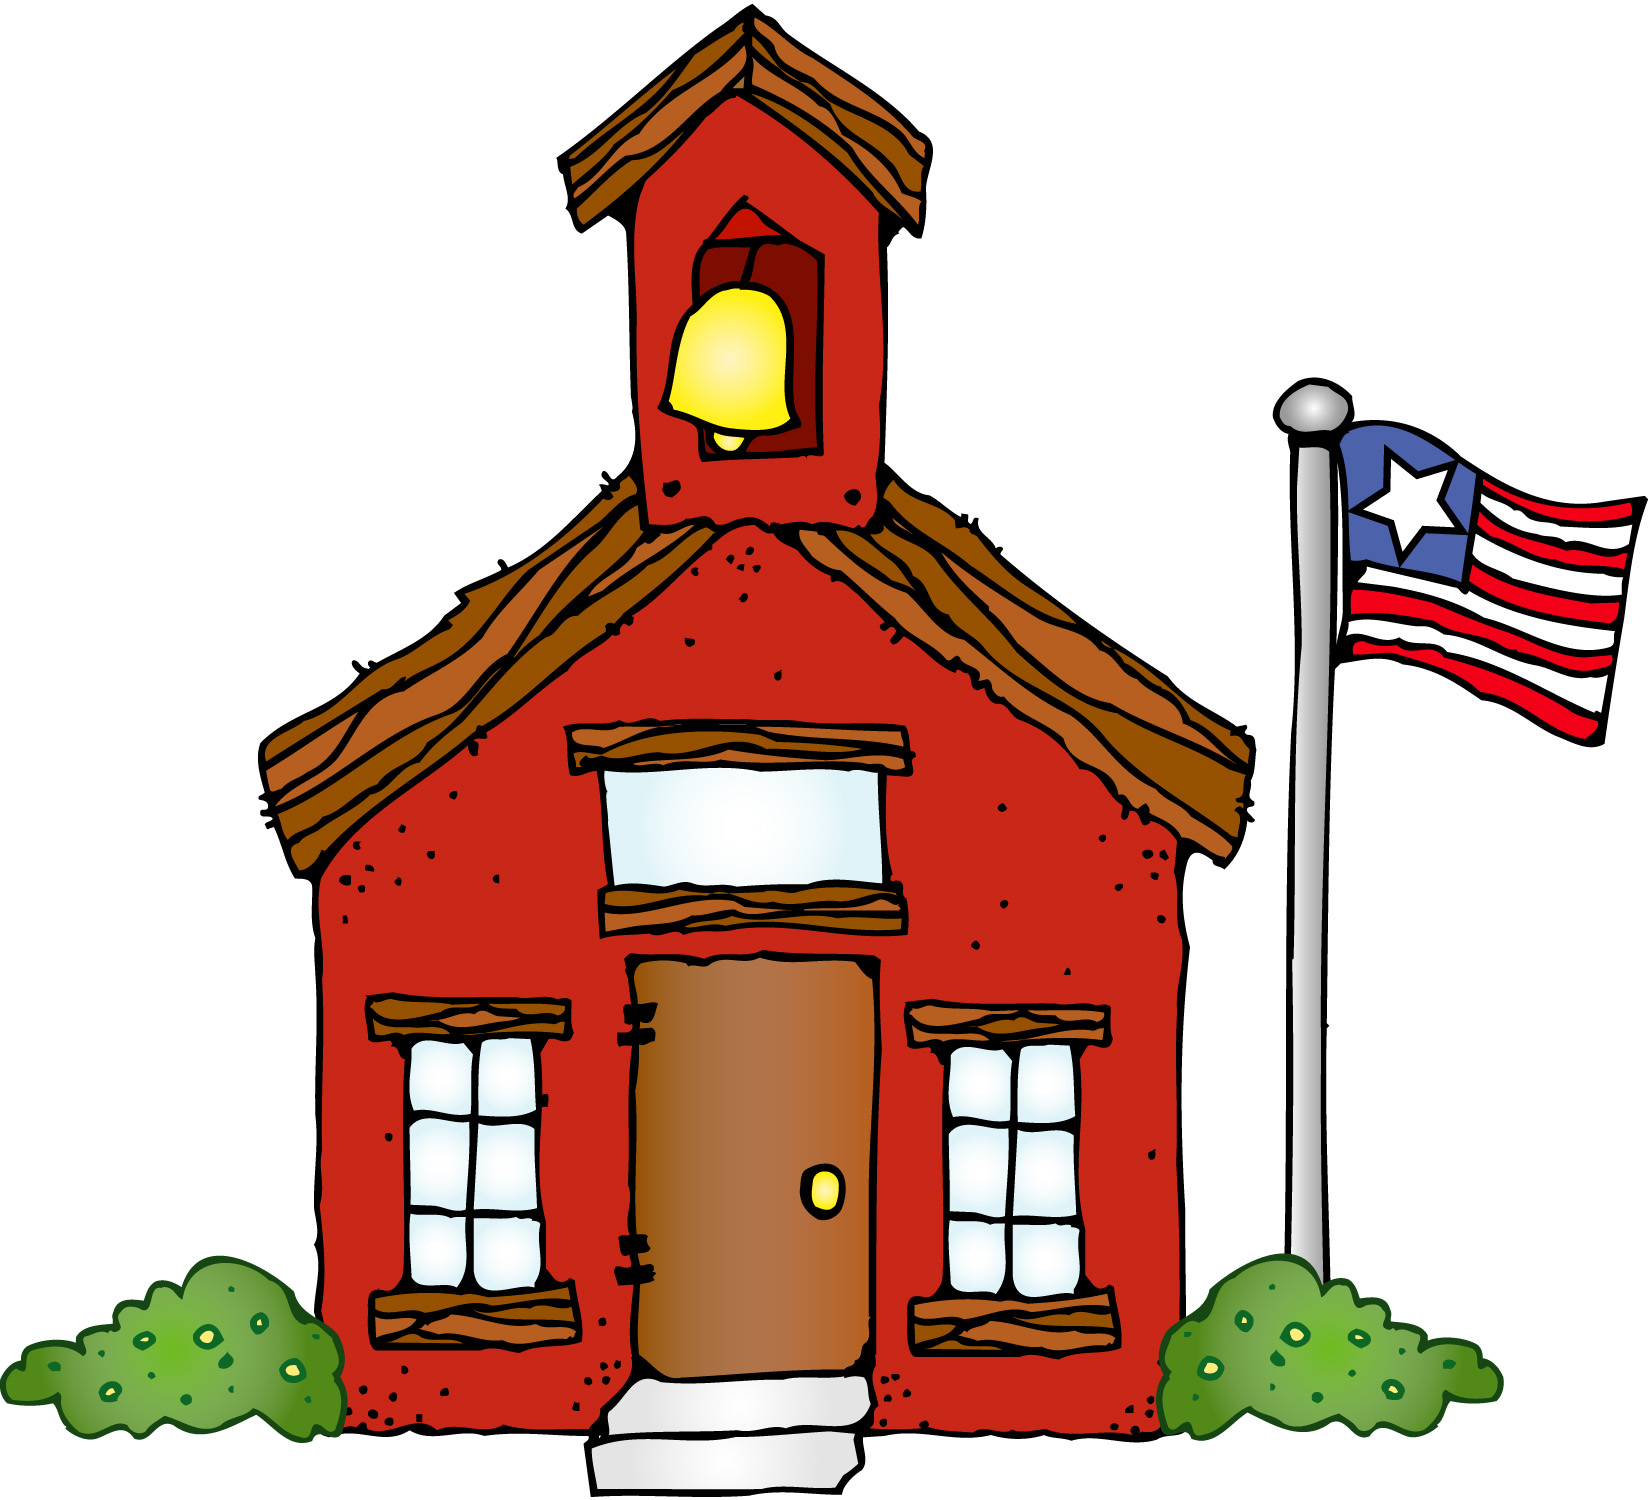 Open house school house images free clipart